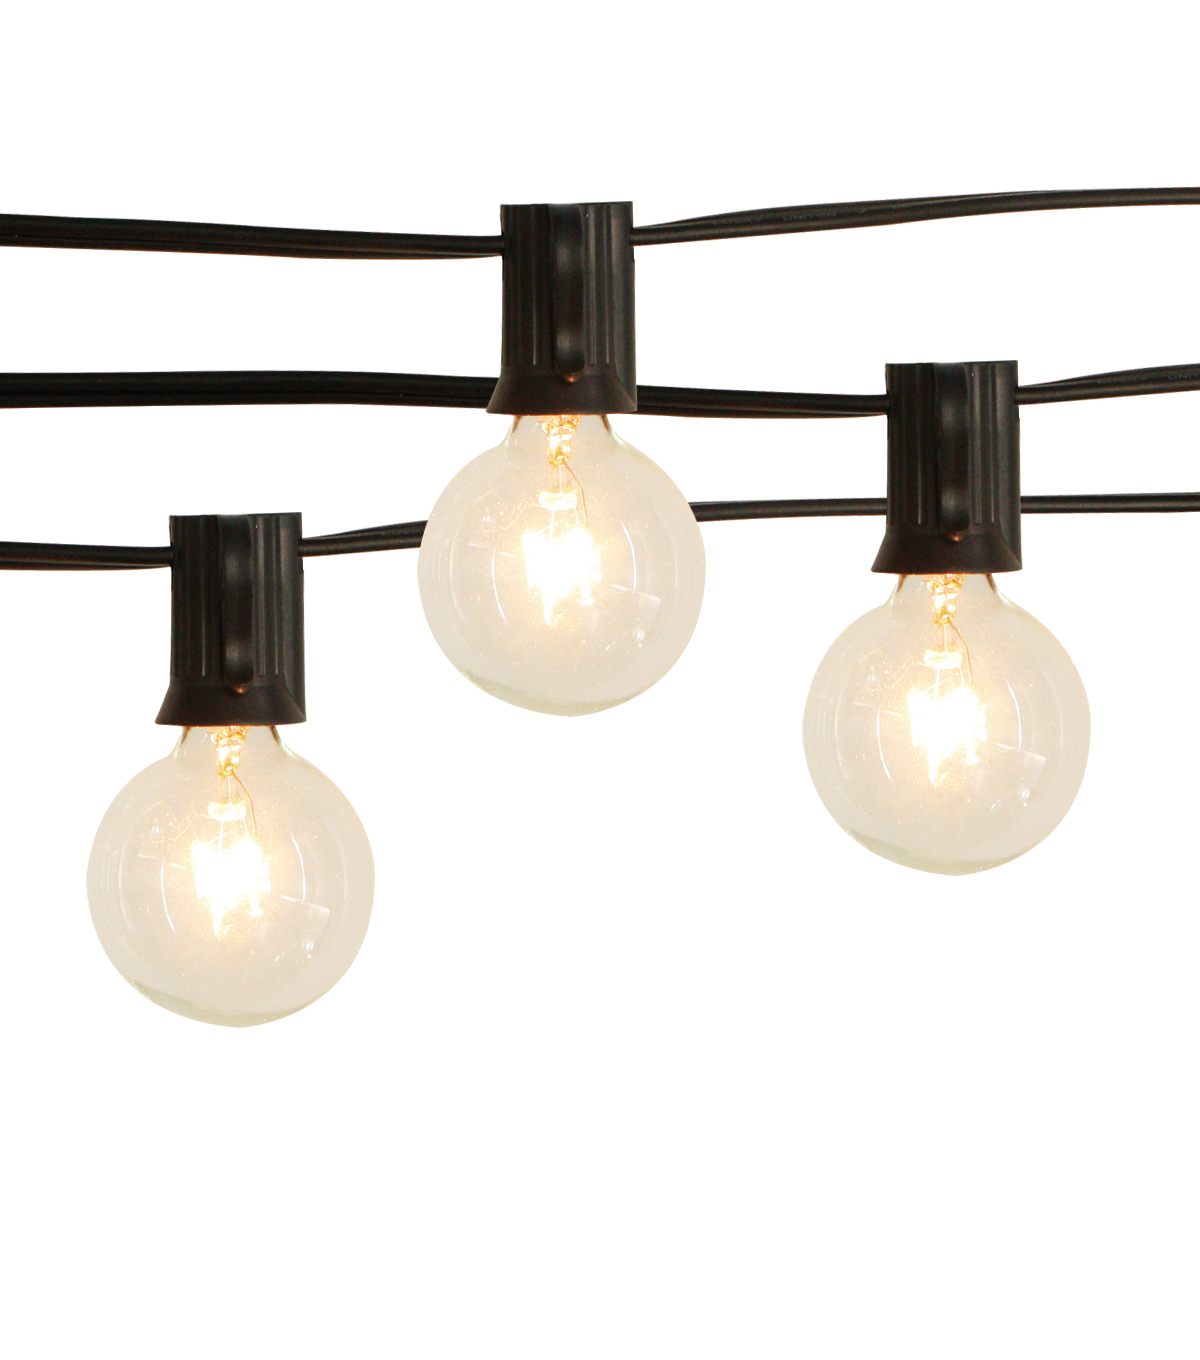 Hudson 43™ Candle & Light Collection G40 Clear Bulb String Lights 20Ct